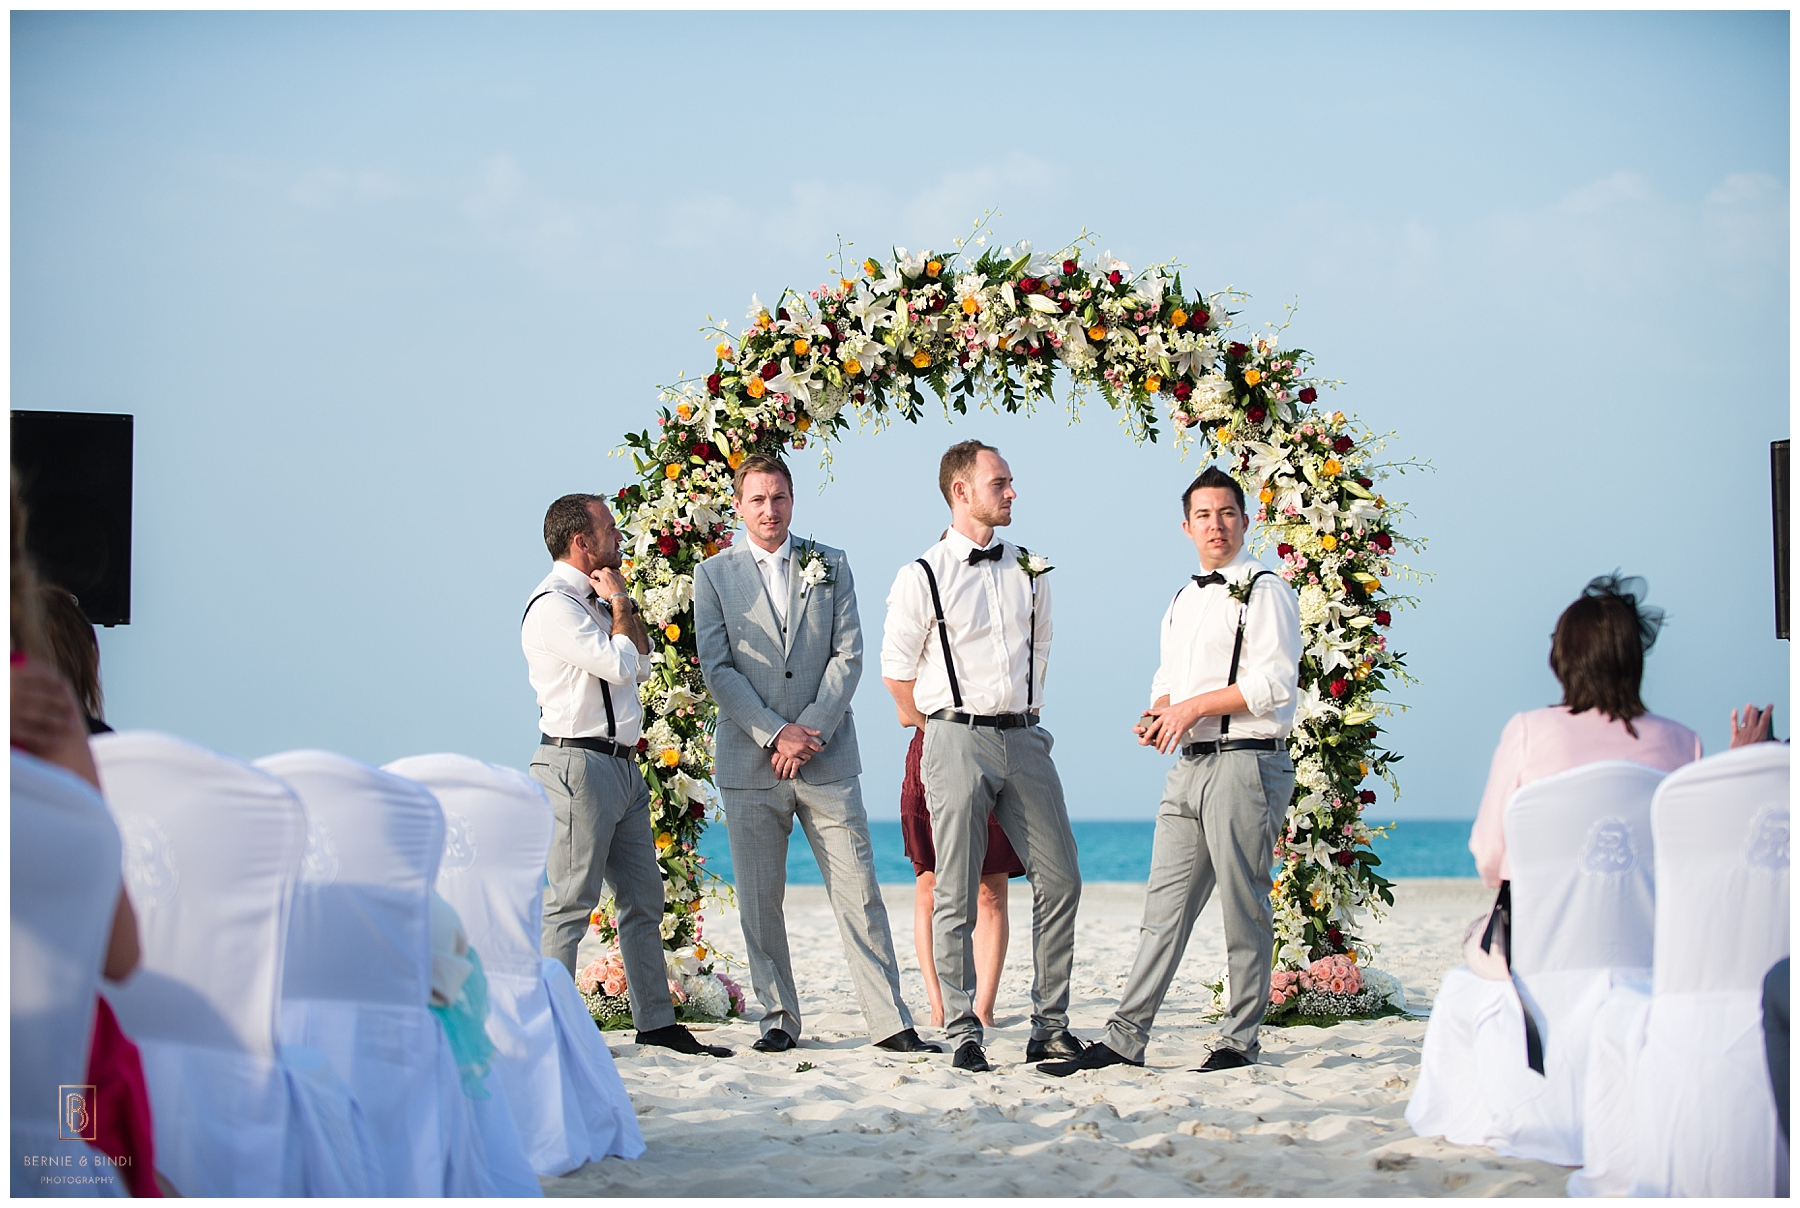 St Regis Saadiyat , Wedding Photographer Dubai, Dubai Wedding Photographer, Abu Dhabi Weddings